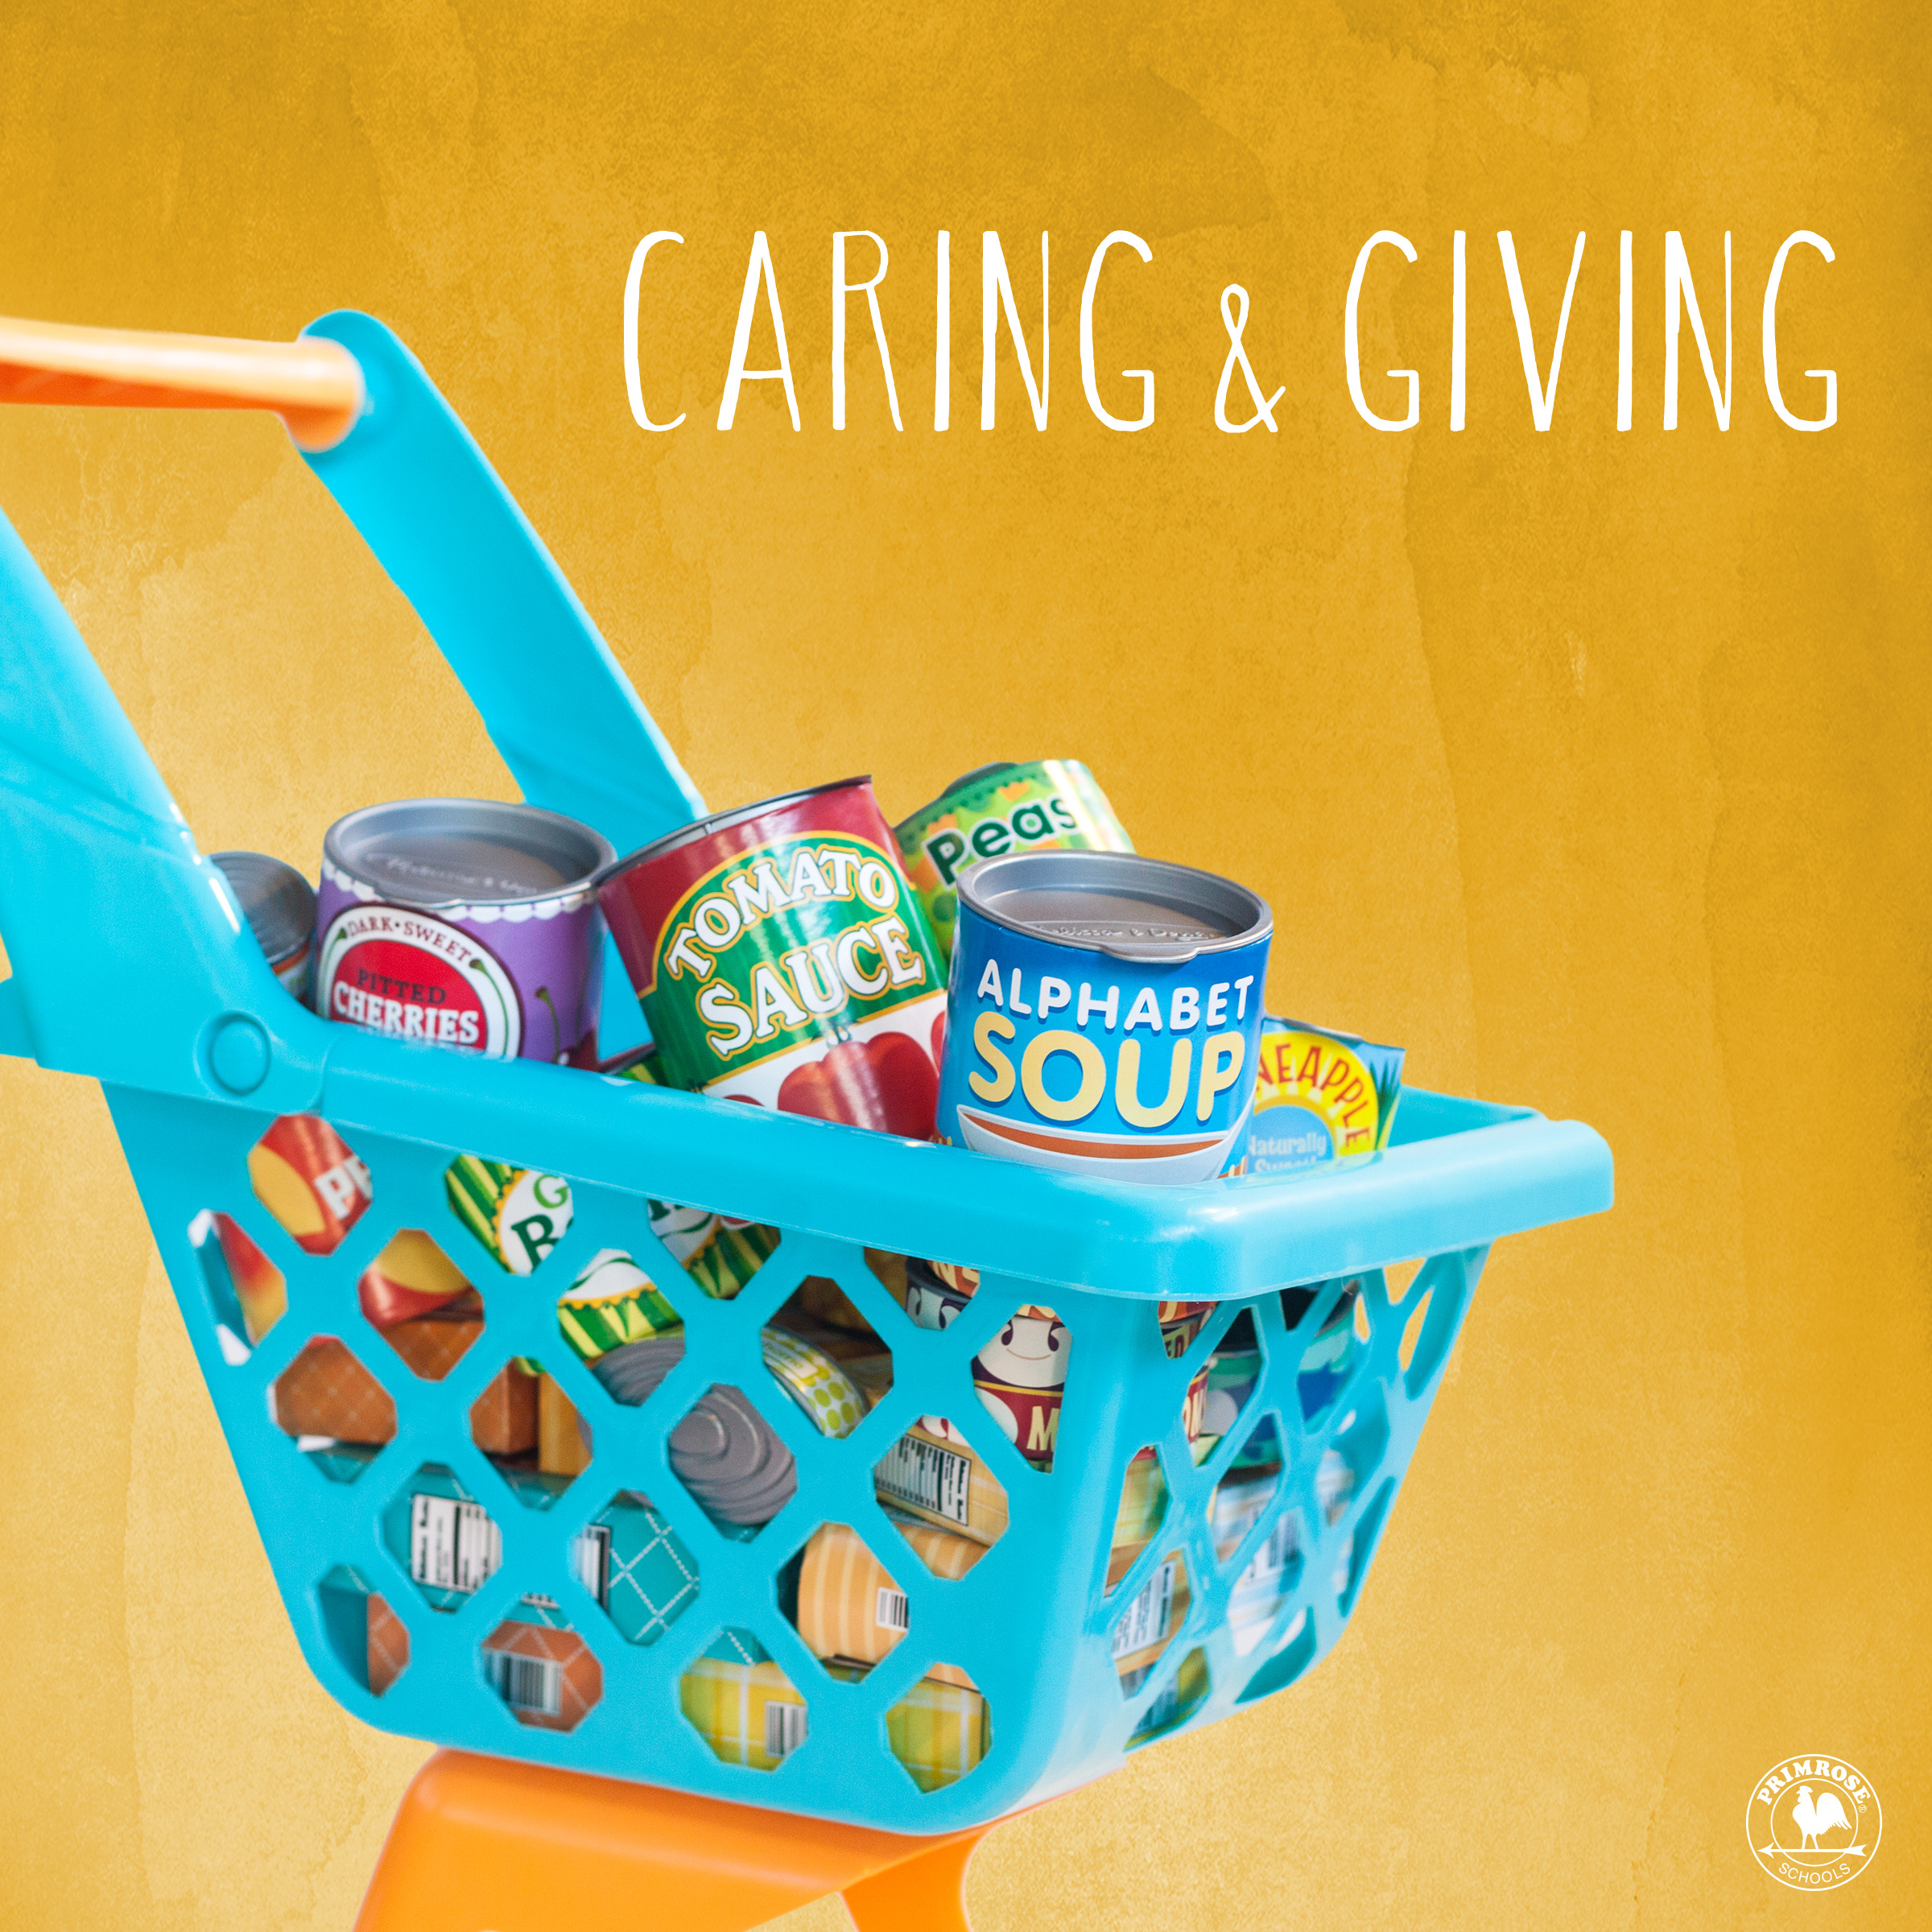 Please help by dropping off nonperishable donation.   Food drive is November 1st through November 20th.